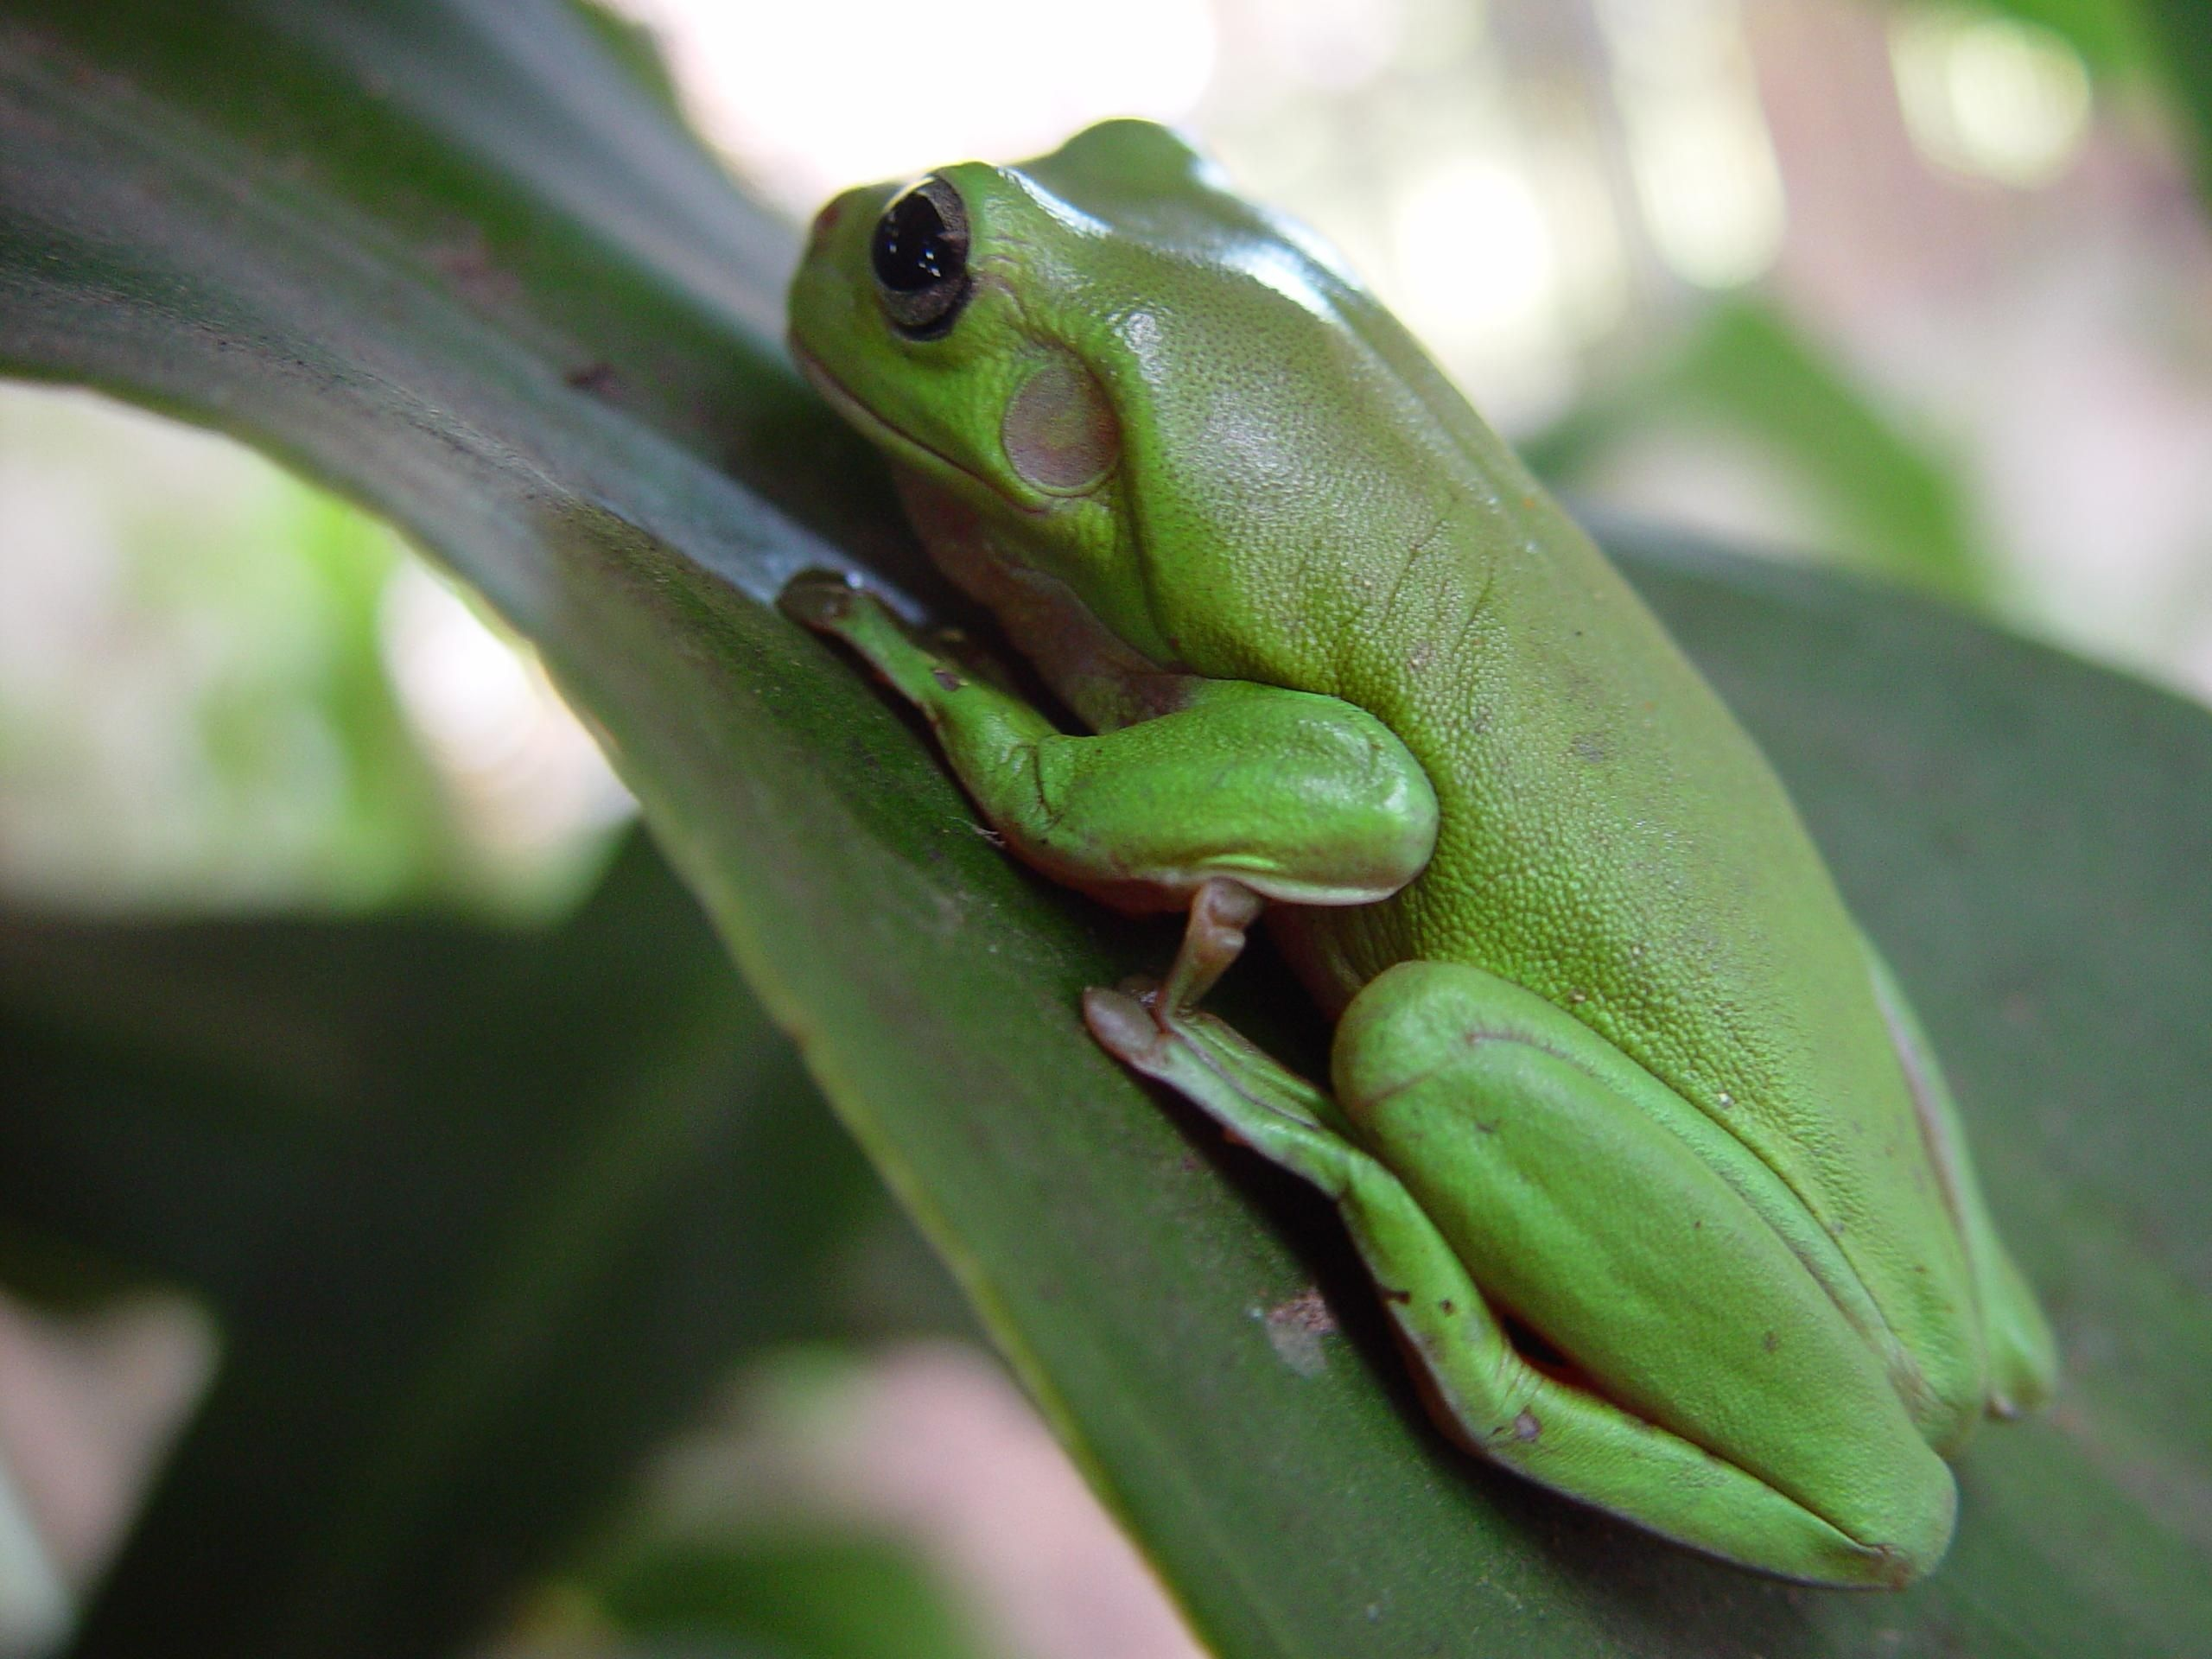 Green Frog, Reptile, Nature, Frog, Animal, HQ Photo